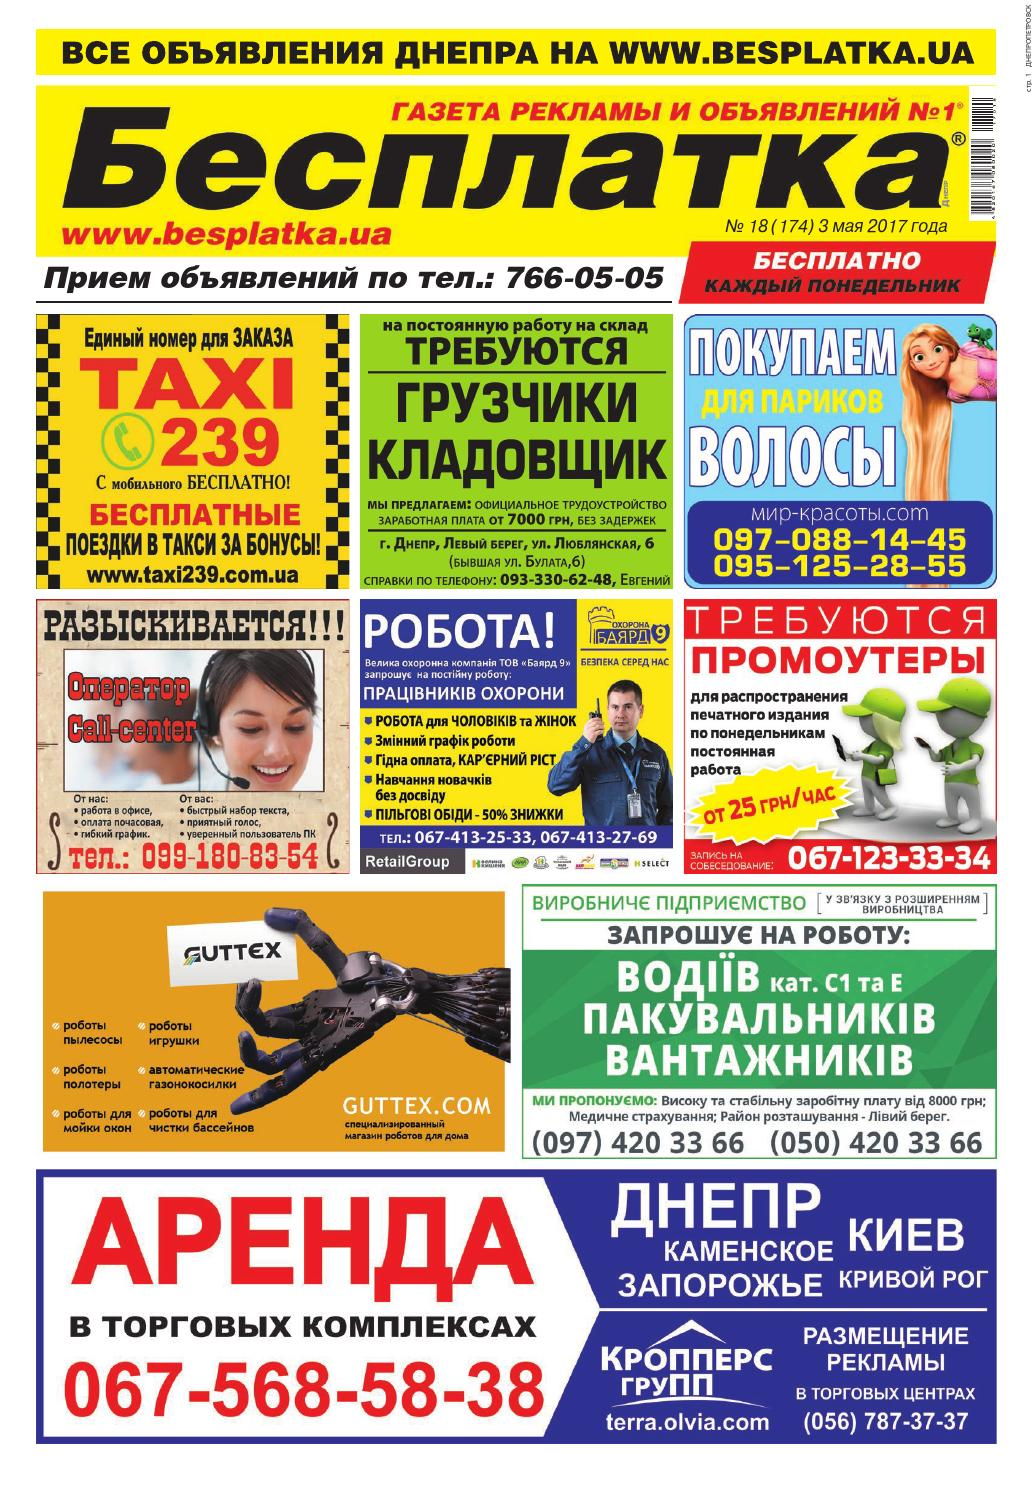 Besplatka  18 Днепр by besplatka ukraine - issuu 971a5bc42ed